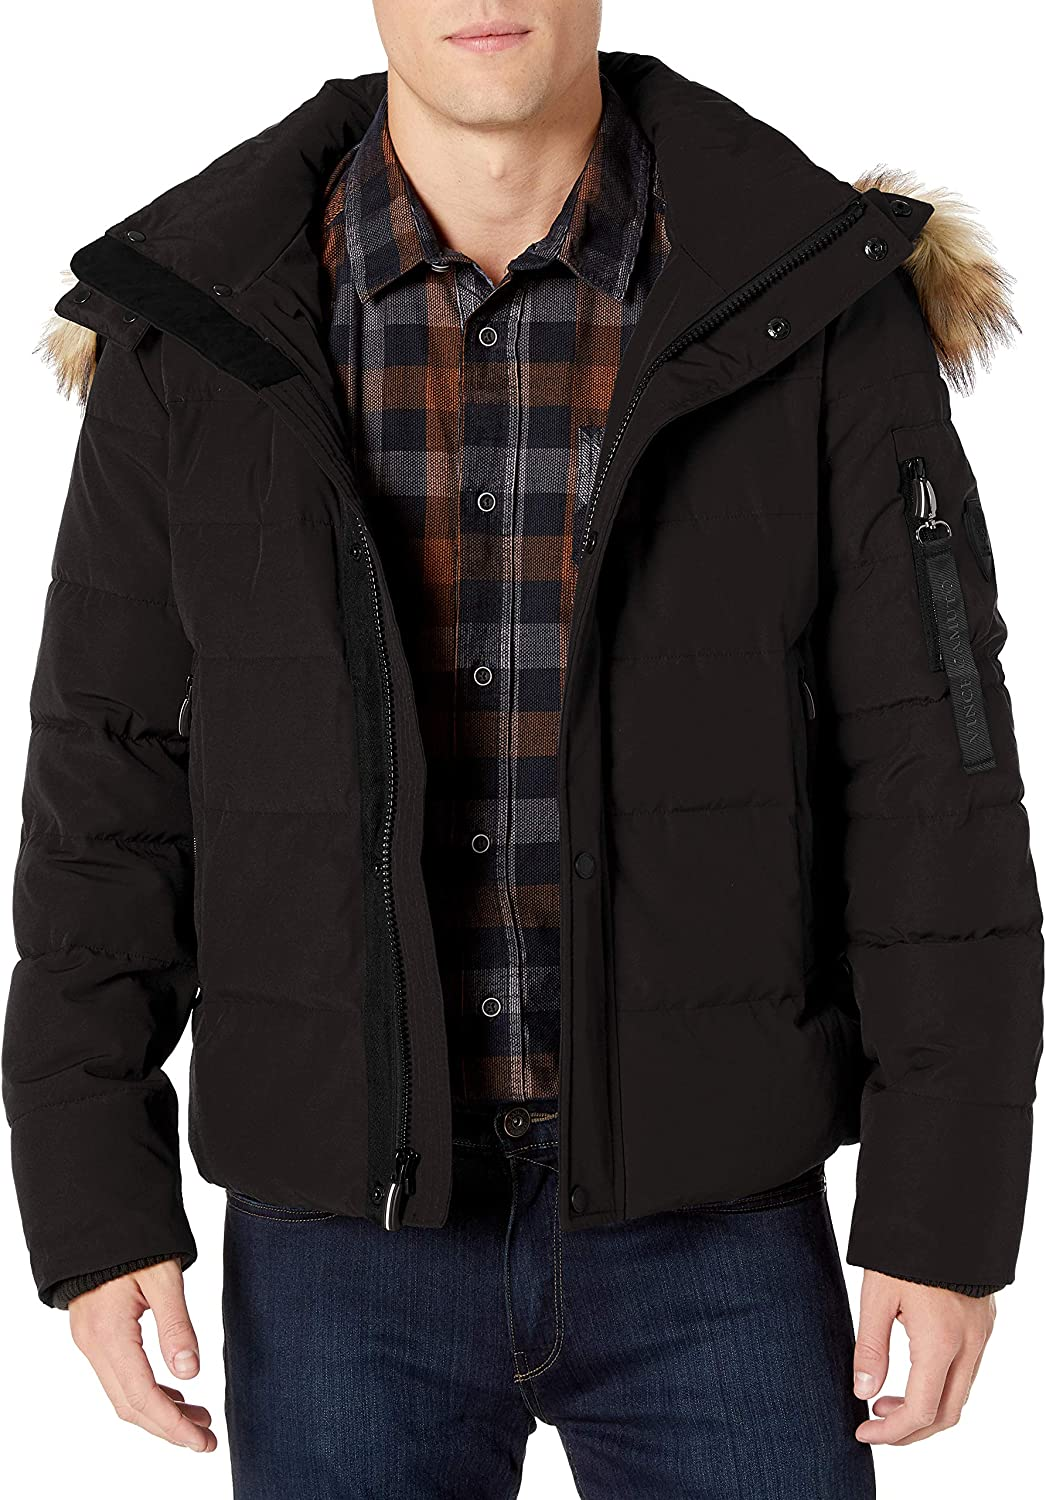 Vince Camuto Men's Puffer Jacket with Faux-Fur Trimmed safety Hood Super beauty product restock quality top!